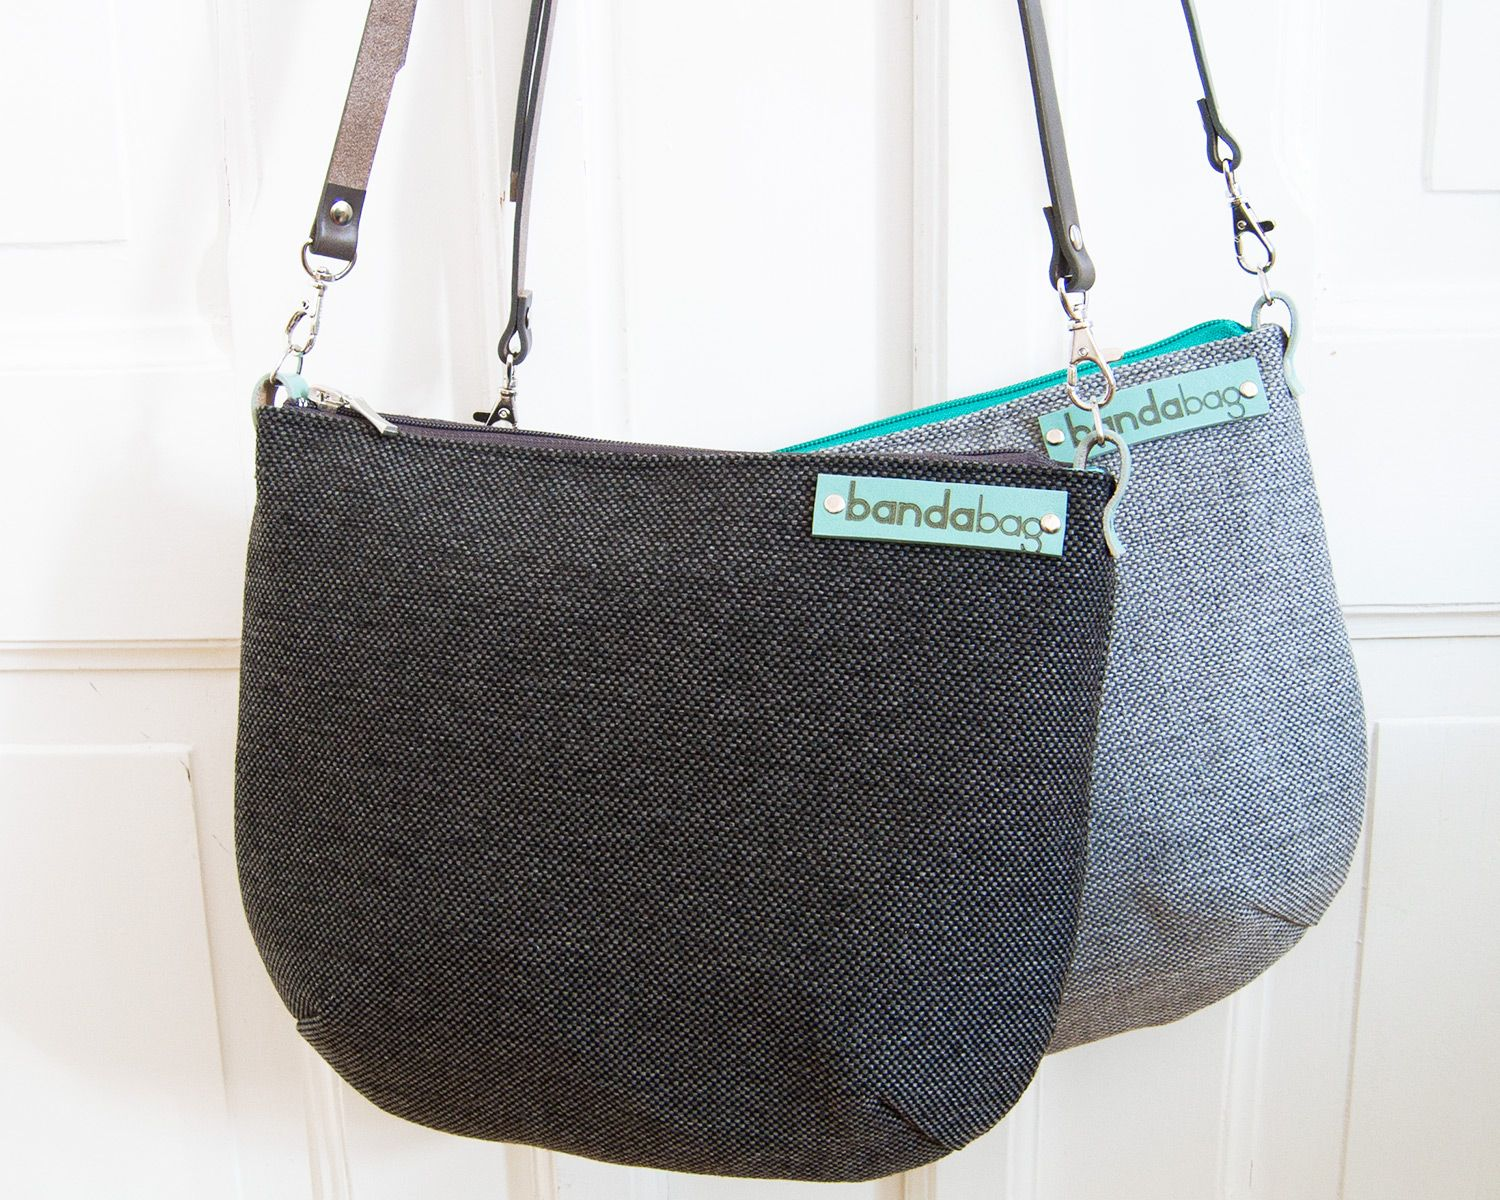 d260a0f3d7b6 Crossbody Bags · Cotton Sheets · Small Bags ·  https   www.facebook.com bandabag MIX series these are small